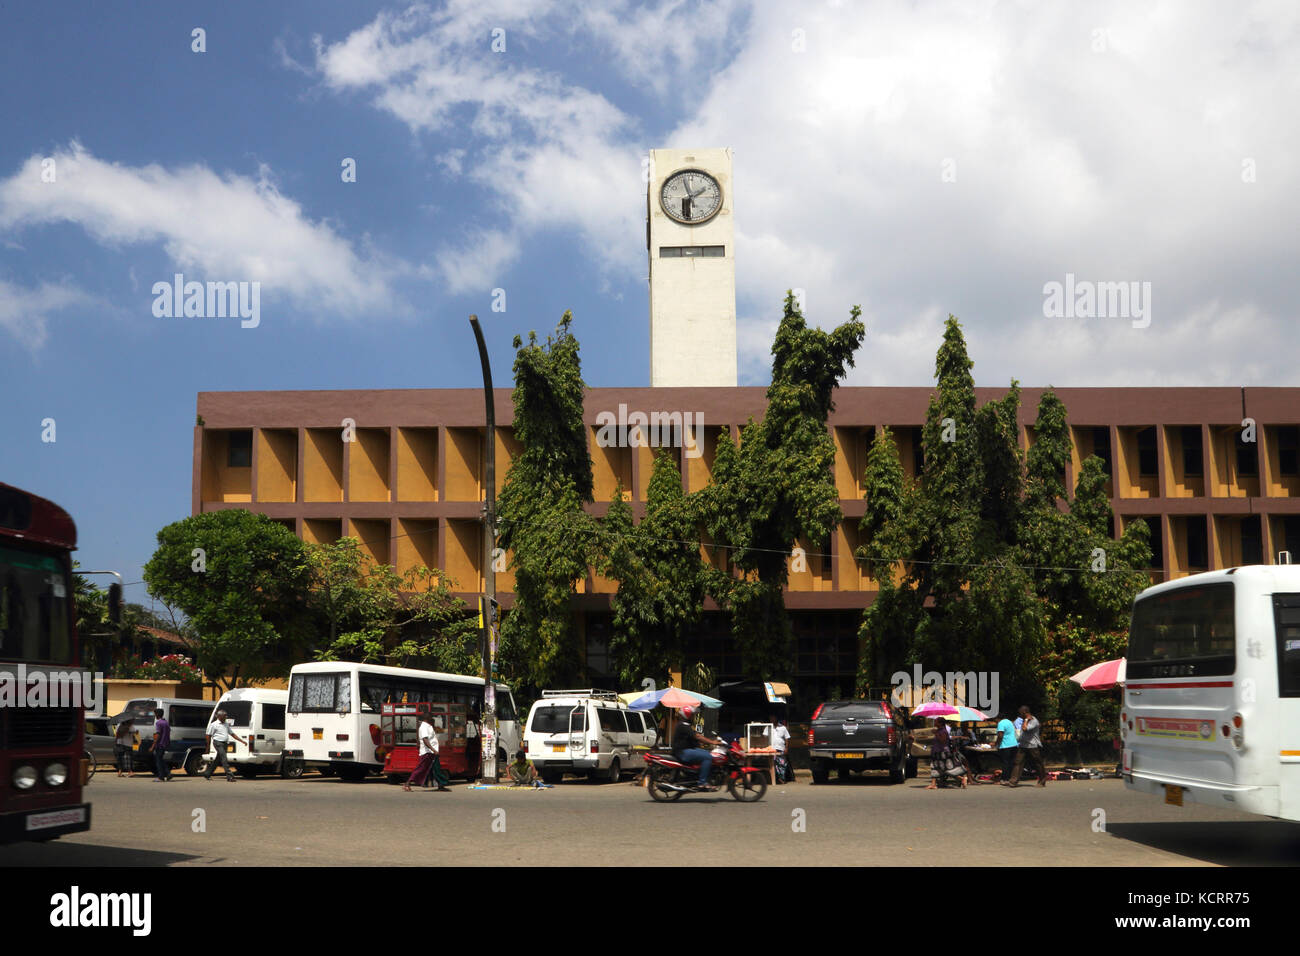 Galle Sri Lanka Street Vendors outside Building With Clock Tower - Stock Image